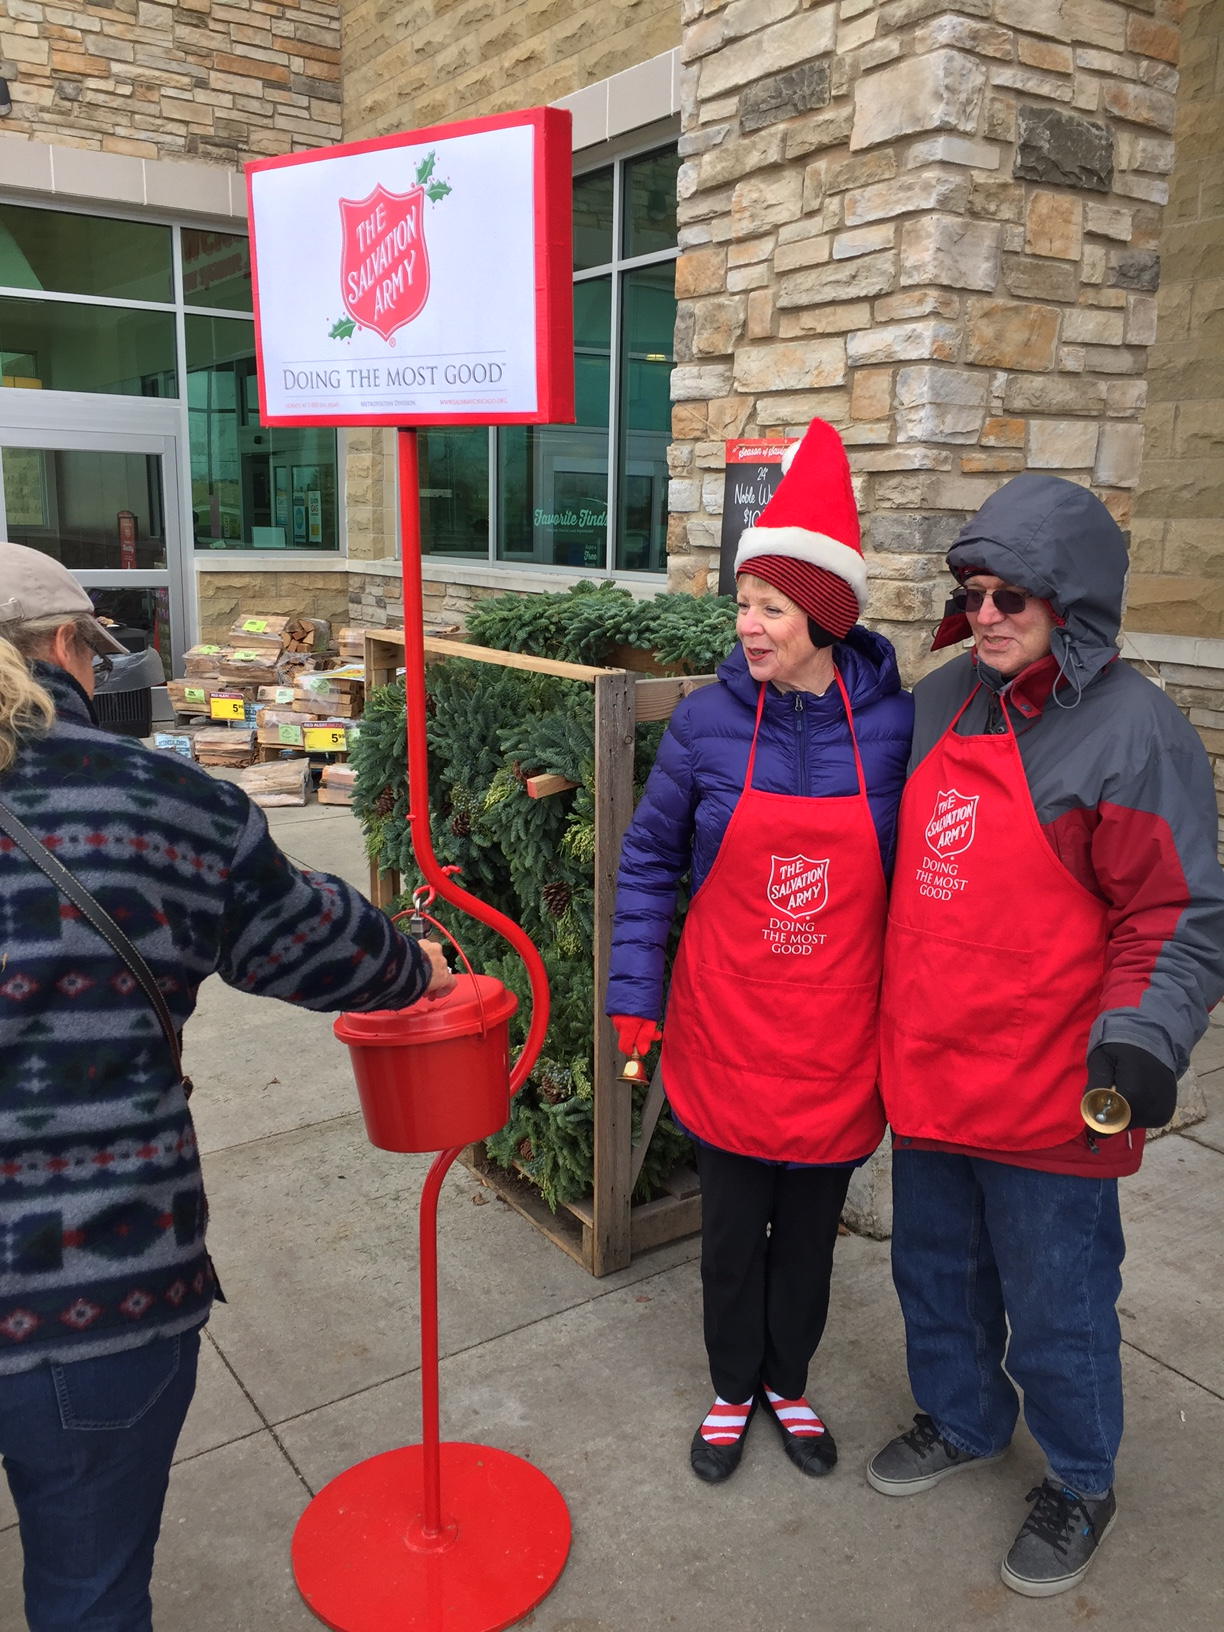 stories rotary club of sycamore rotarians sally bruch left and lavarre uhlken on duty at the jewel osco store in sycamore they were among the many rotarians that assisted the